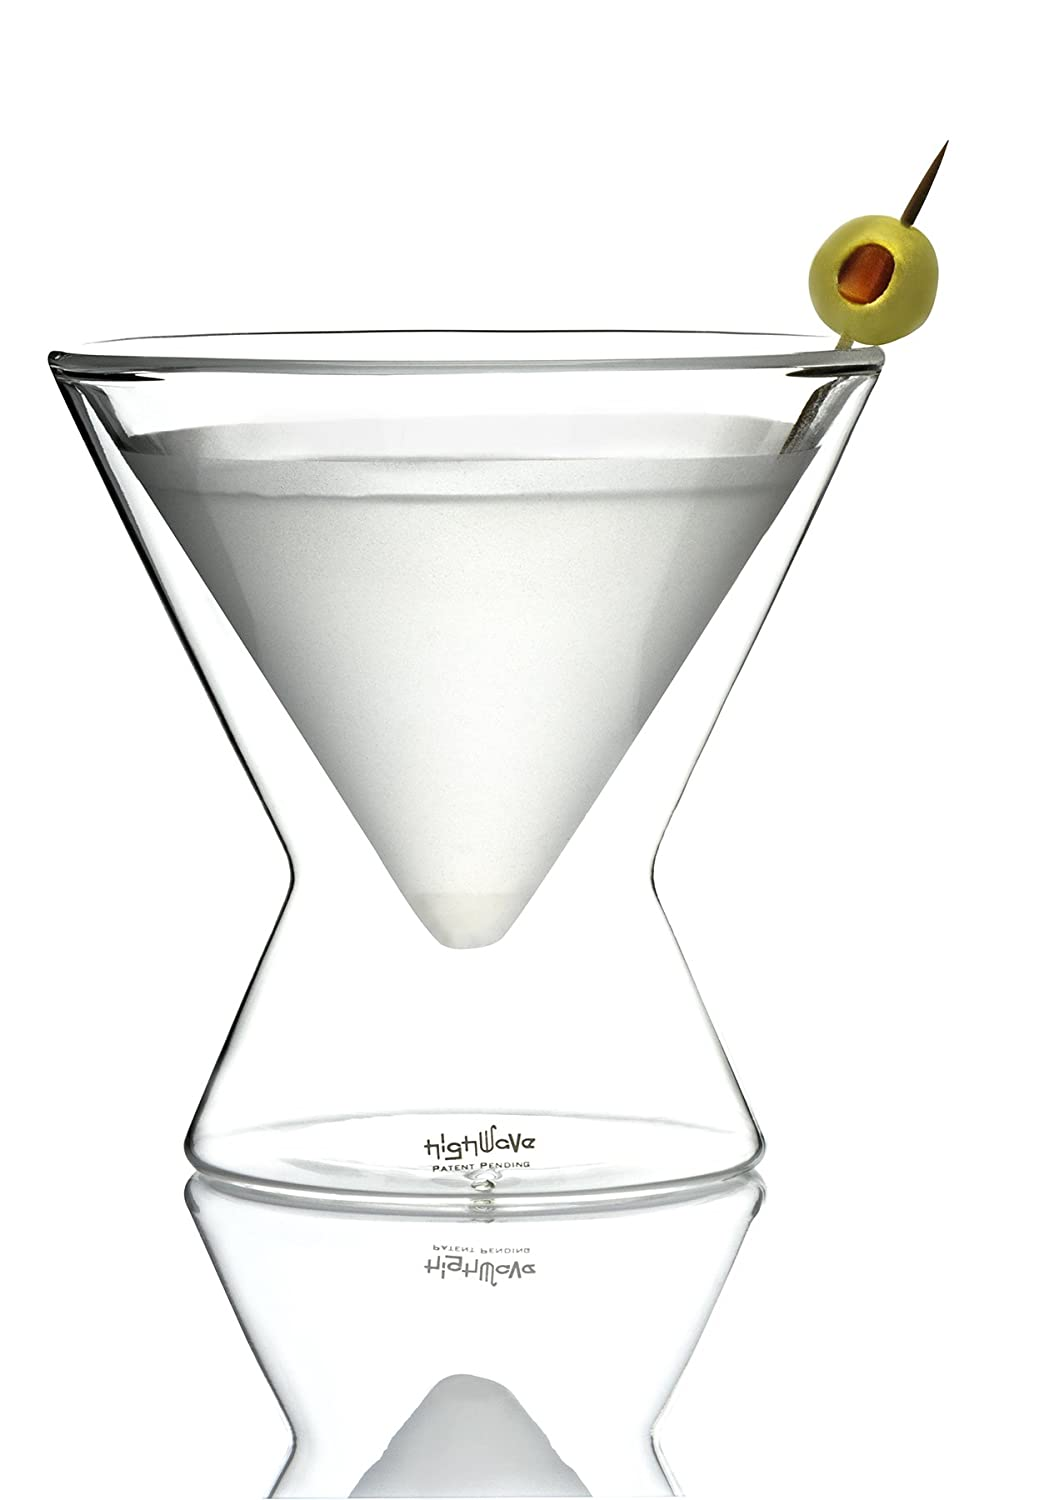 Highwave WM0600 La Martini Glass, 8 oz, Clear